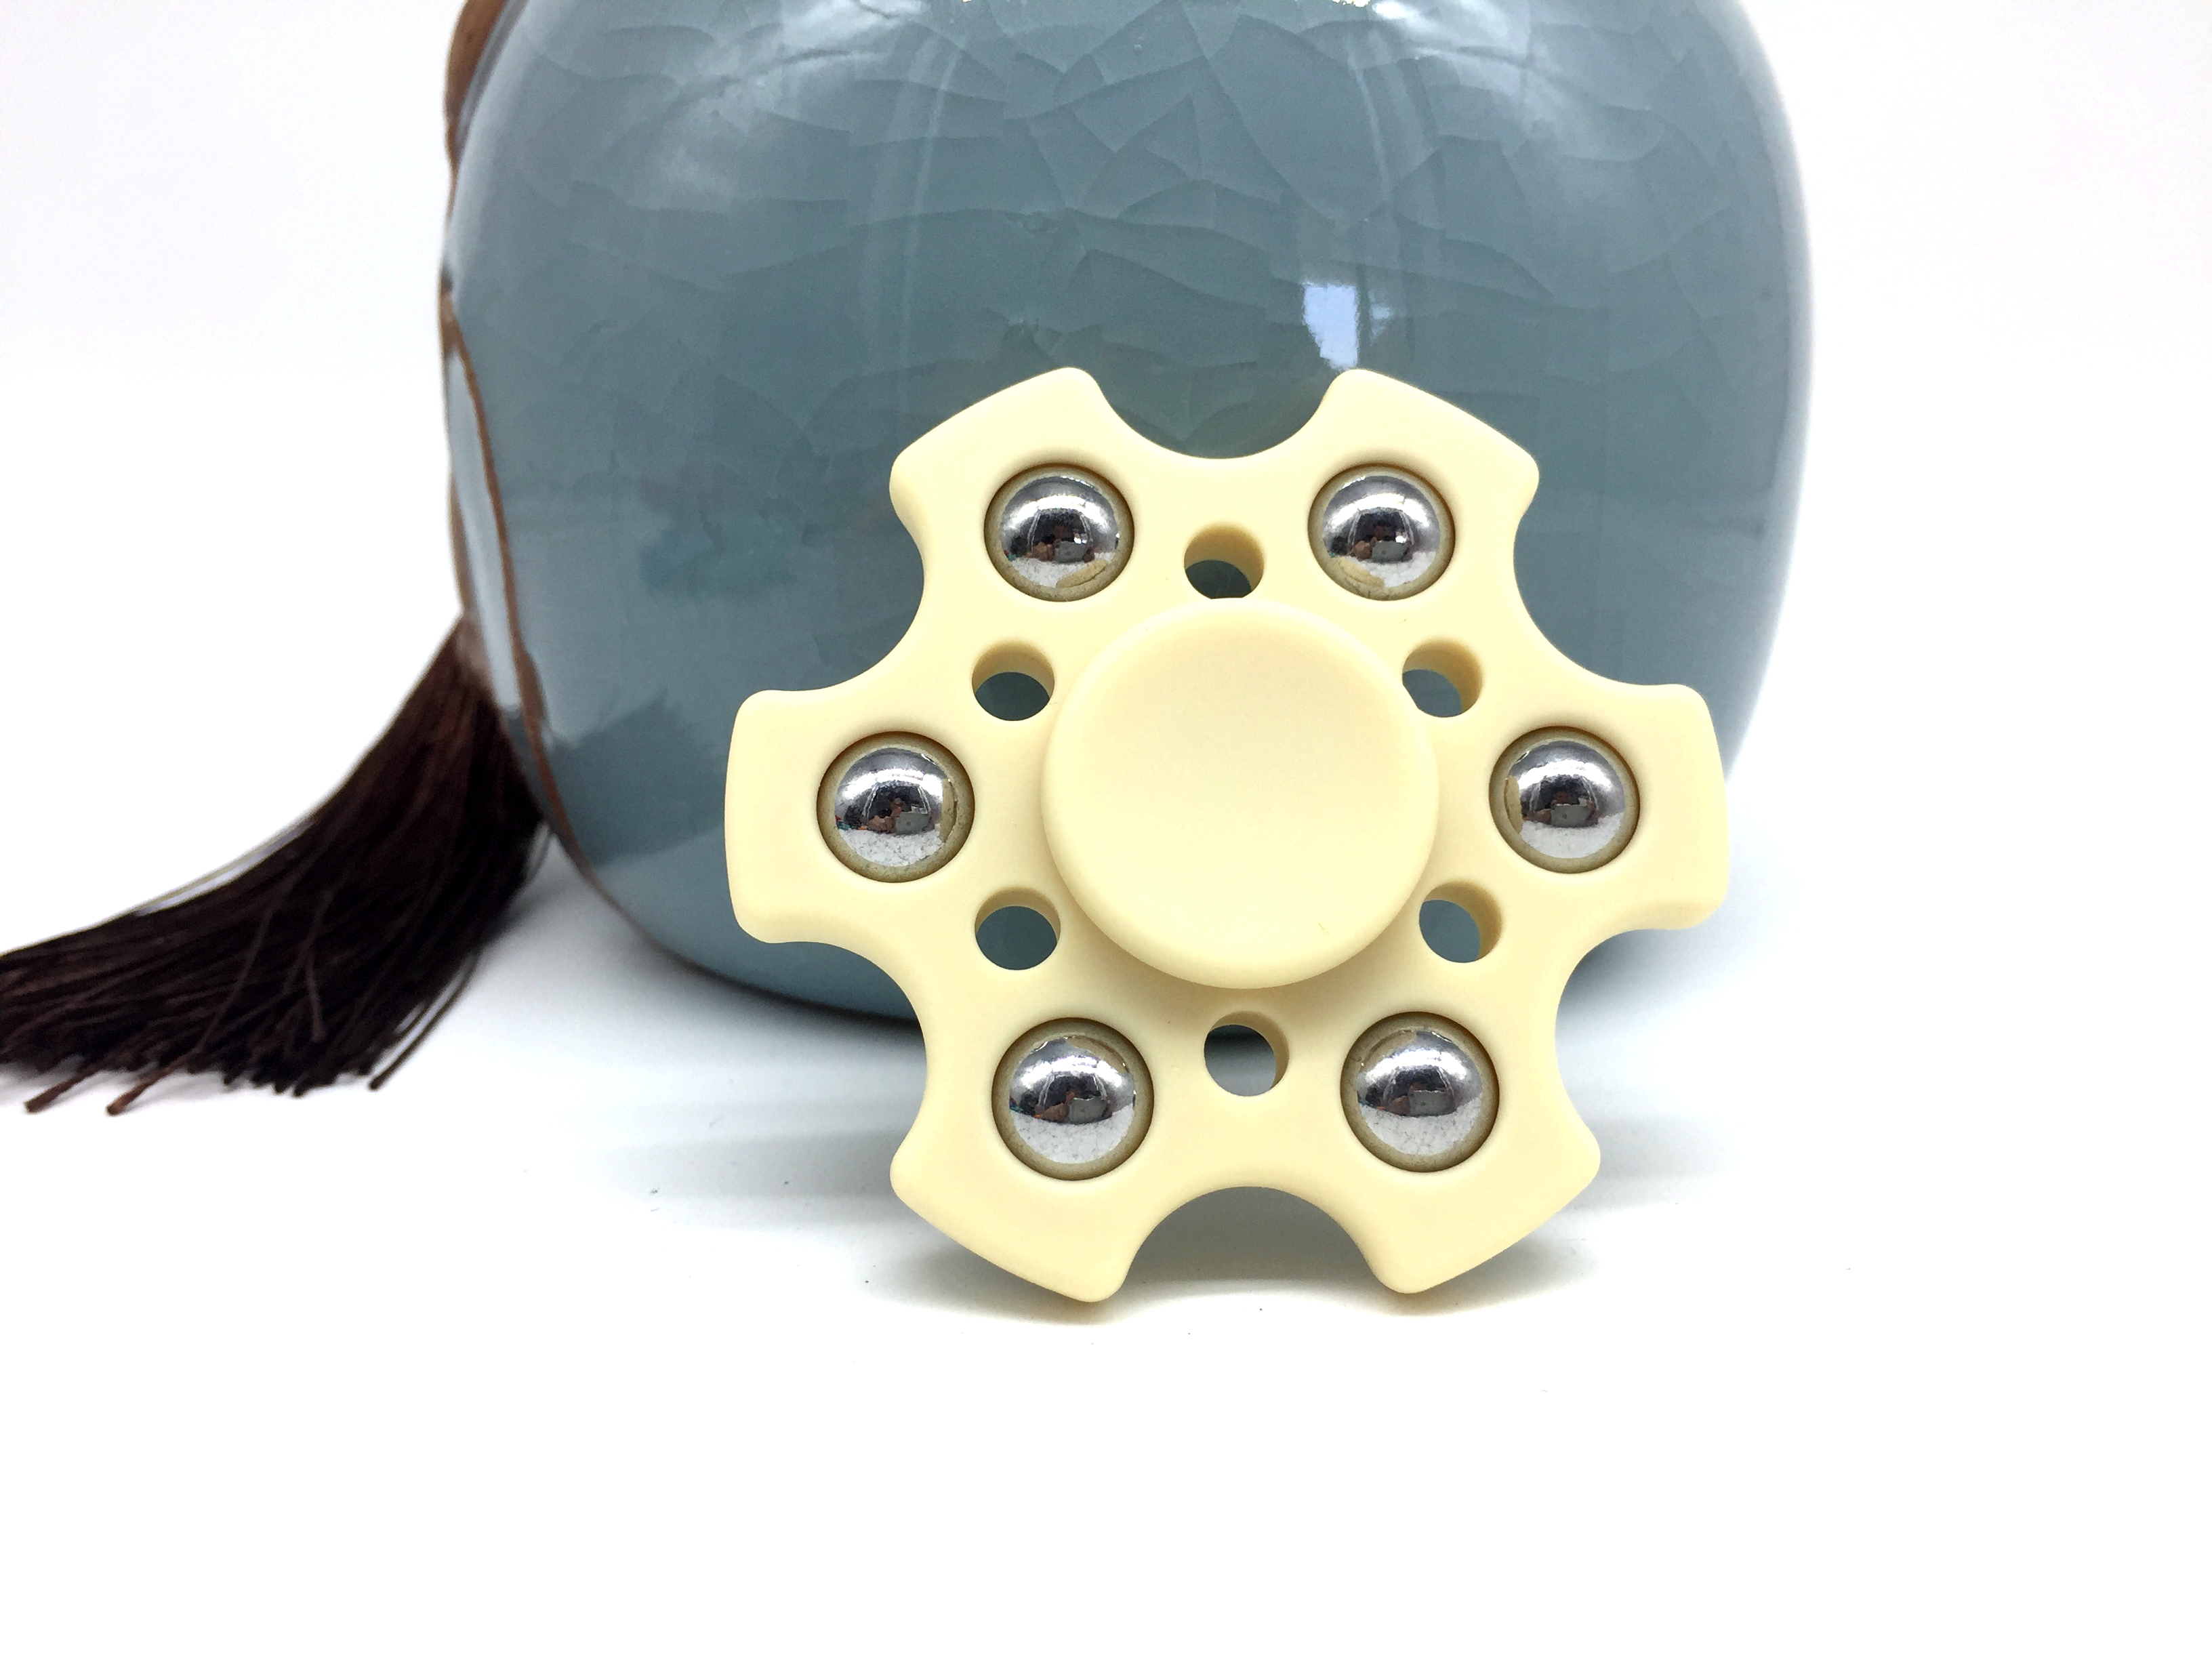 Brand new spinner fidget display with best price